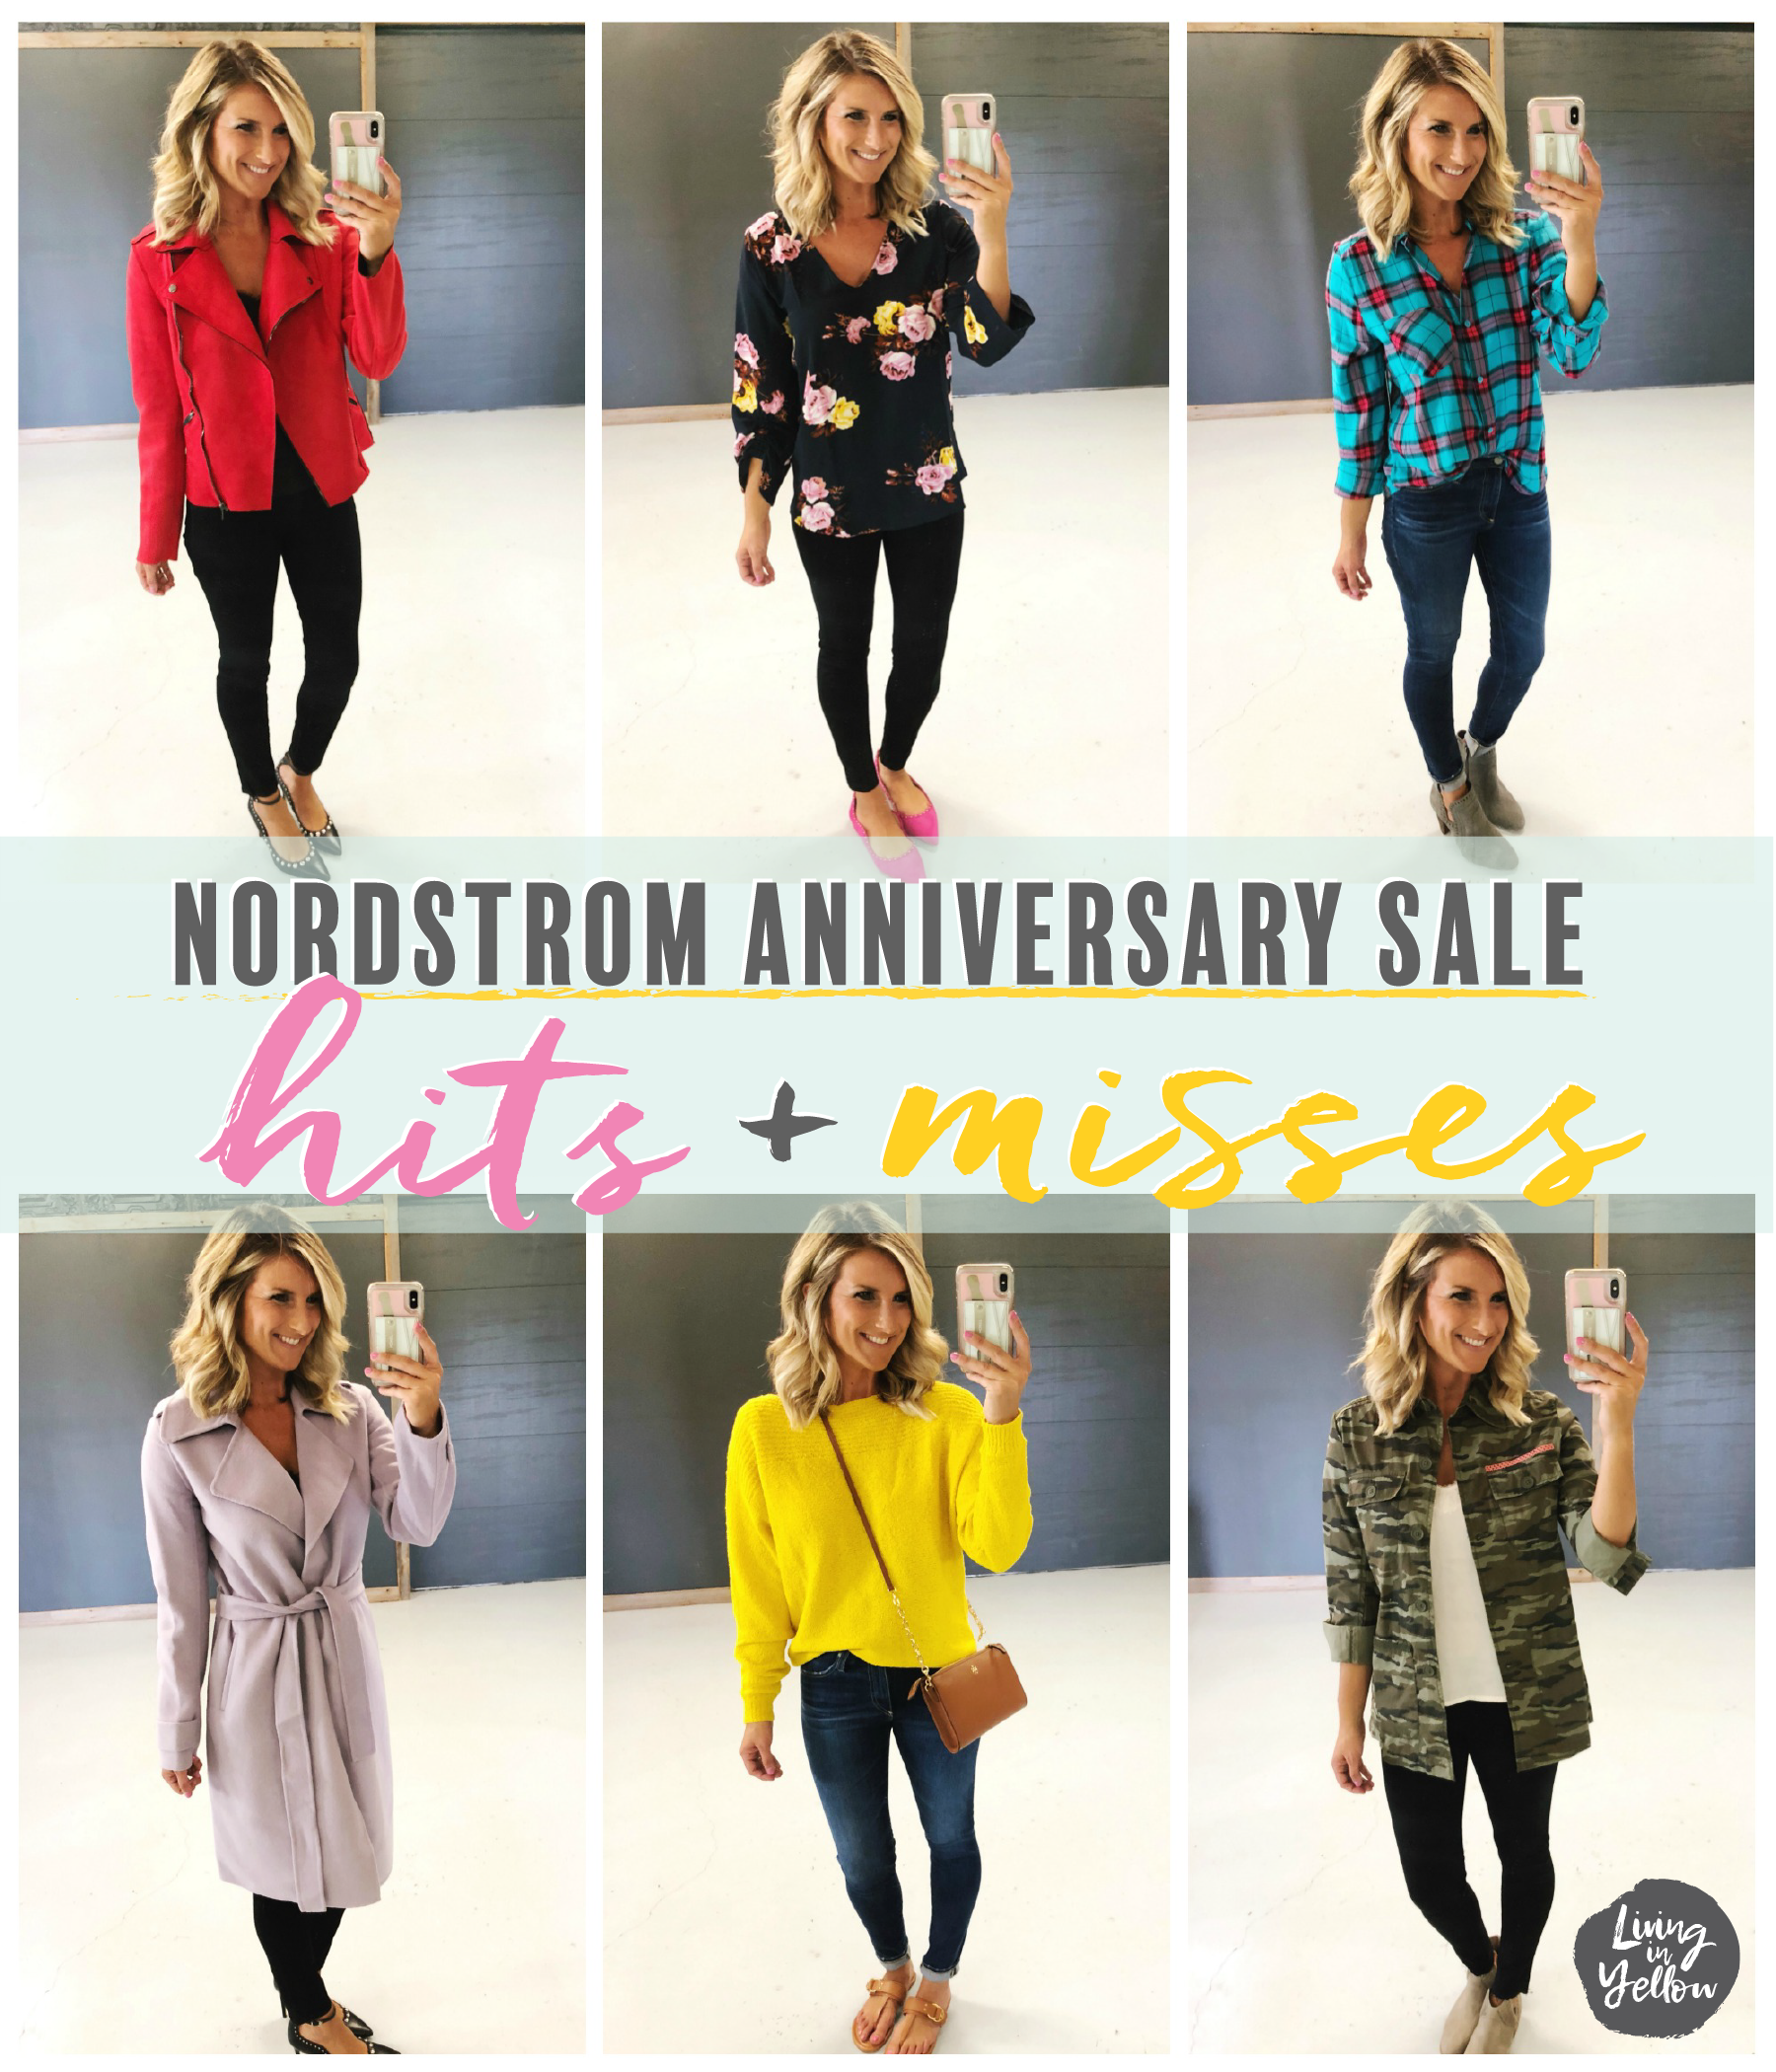 cb0758c1d2a The time that ALL of us have been waiting for, public access for the 2018 Nordstrom  Anniversary Sale is open and ready for EVERYBODY to get their shop on!